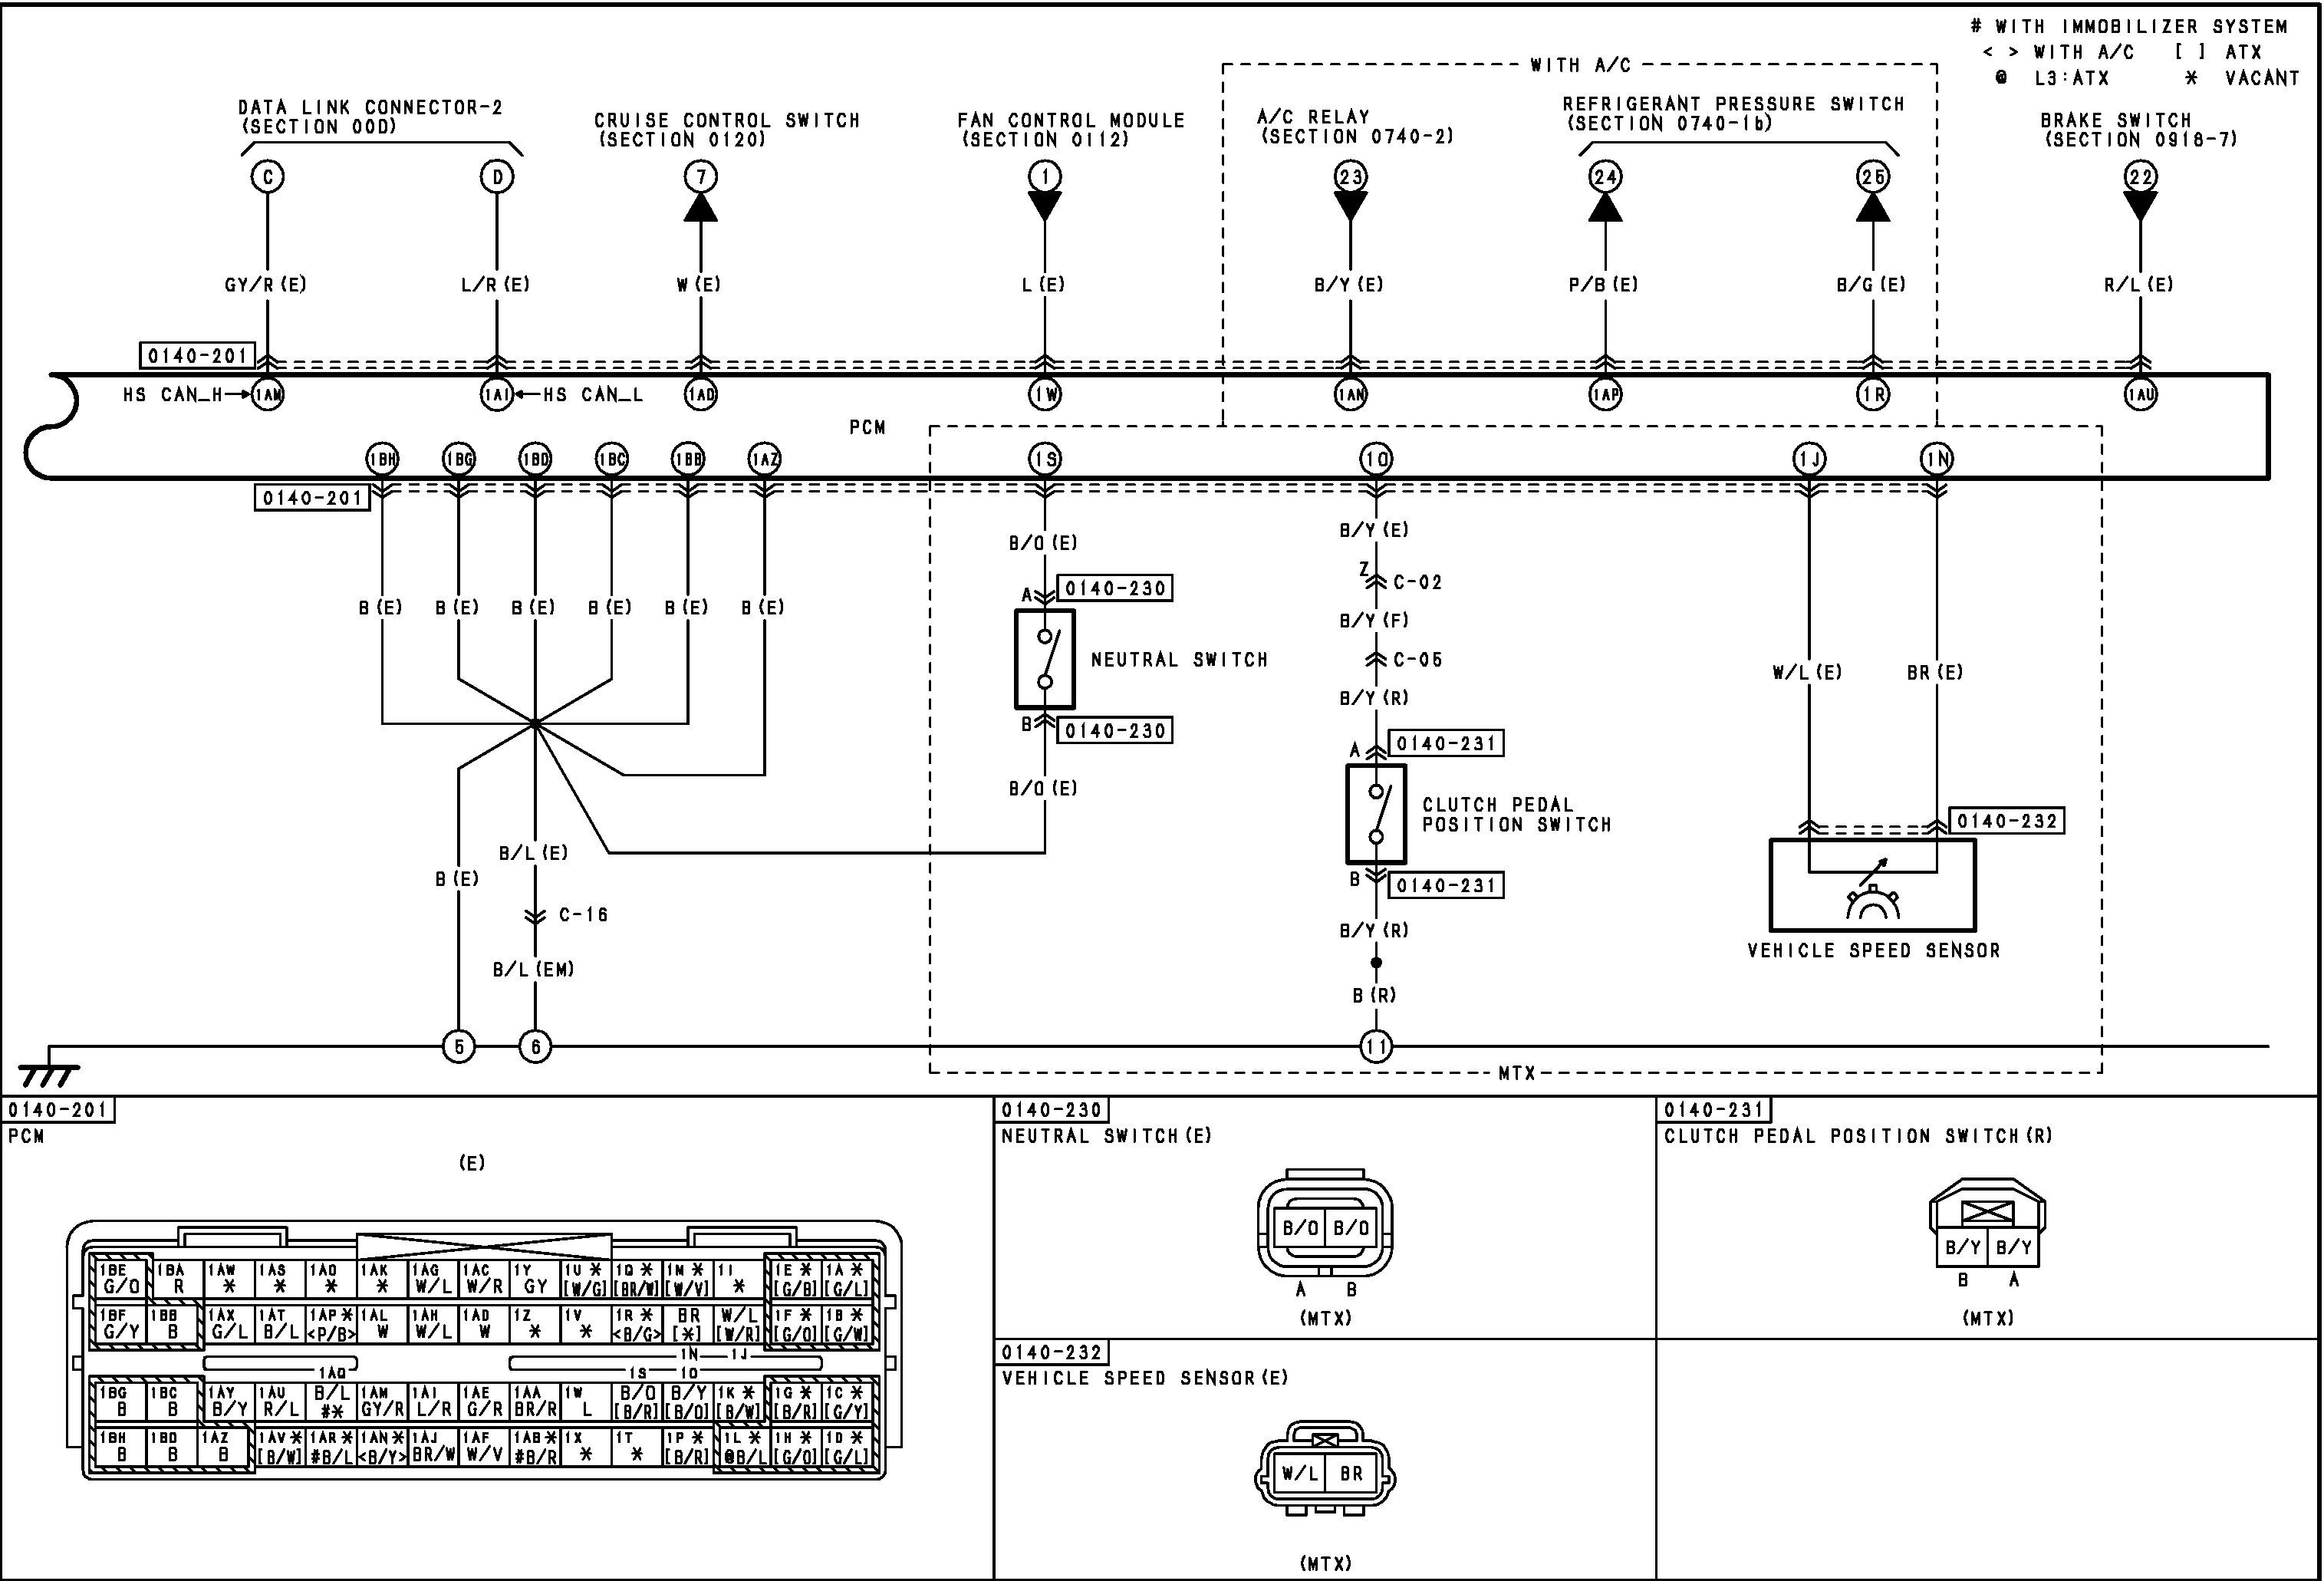 Mazda 3 VSS wire info (large diagrams) | Mazdas247Mazdas247